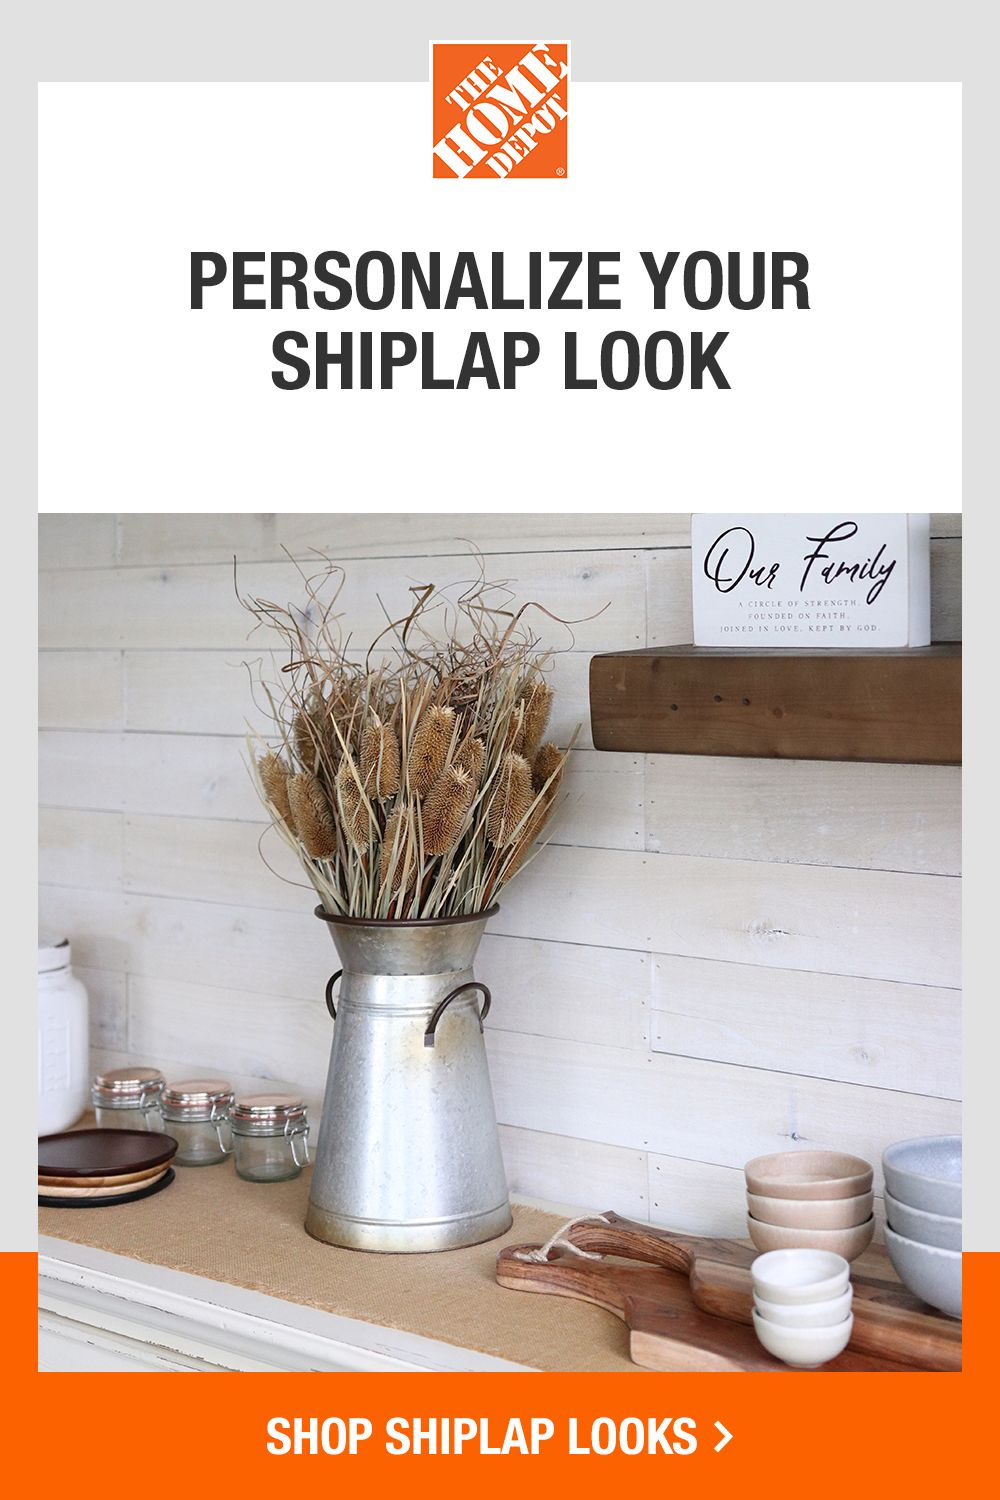 Refresh your space with a wide selection of shiplap looks from The Home Depot. Get help with your DIY with easy-to-follow how-to guides, and rent all the tools you need to complete your project. Tap to shop shiplap looks at The Home Depot.